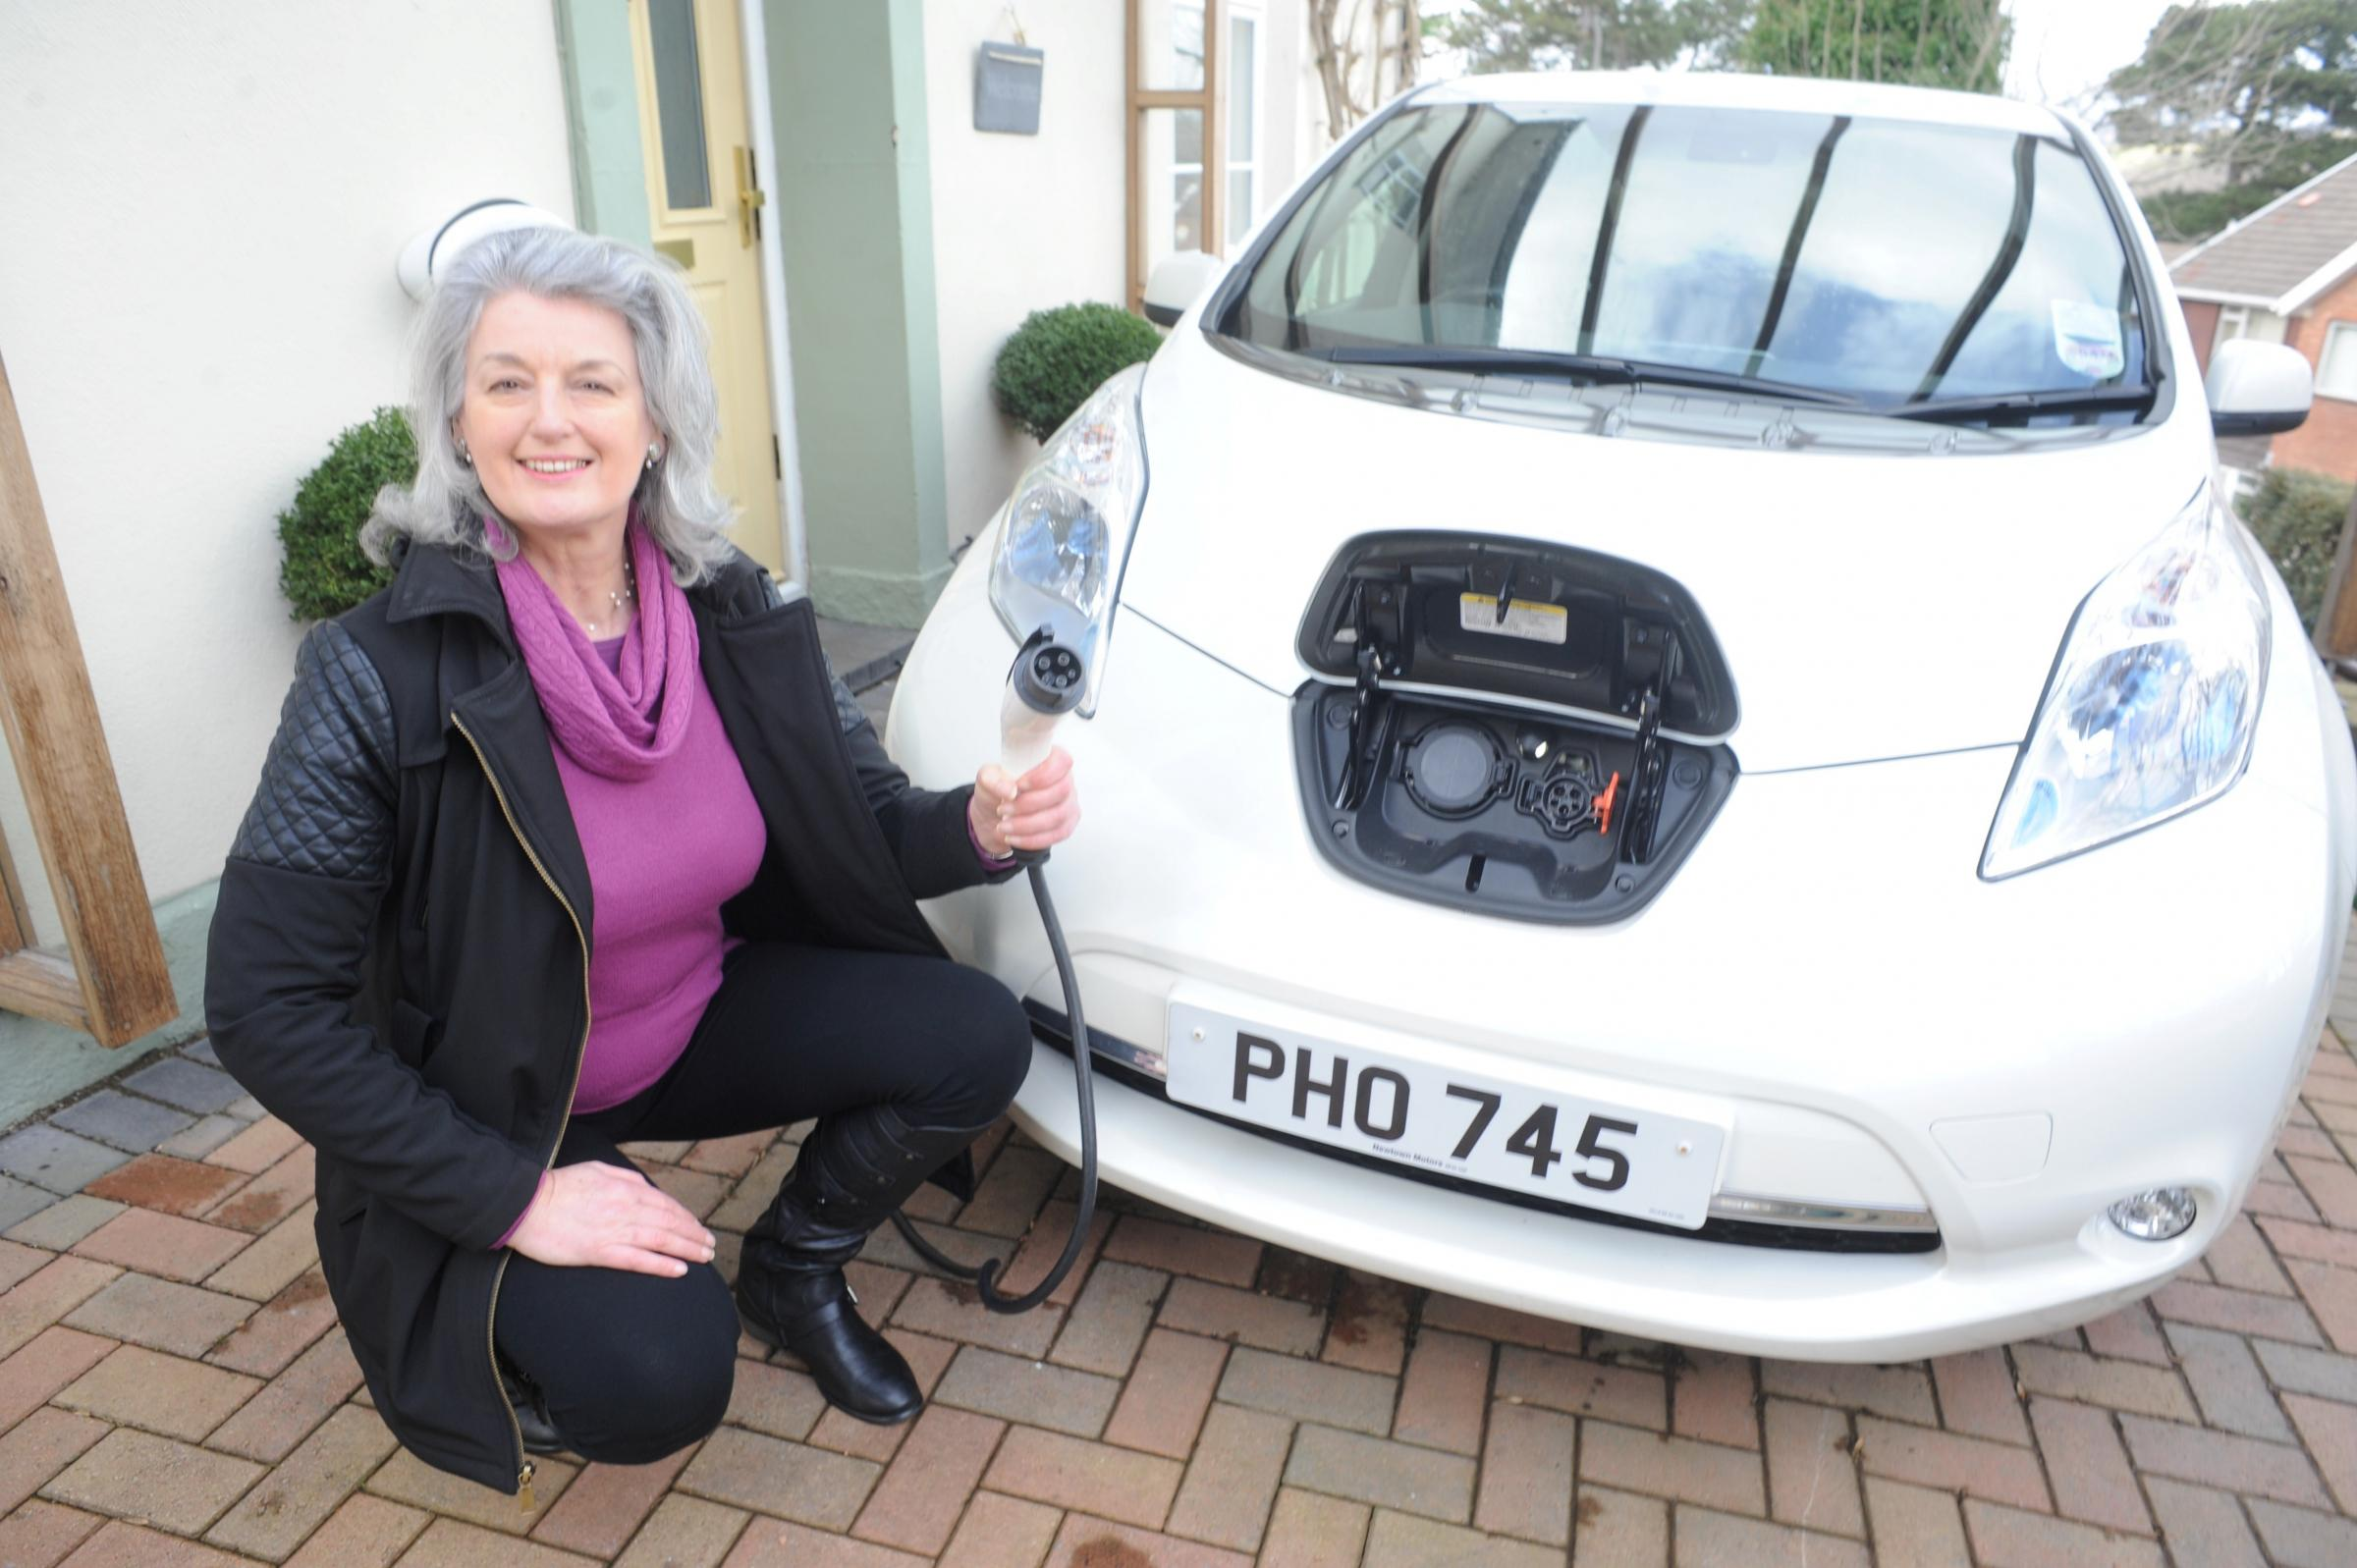 The Nissan Leaf electric car owned by Pippa Bartolotti, leader of Wales Green Party (4269830)